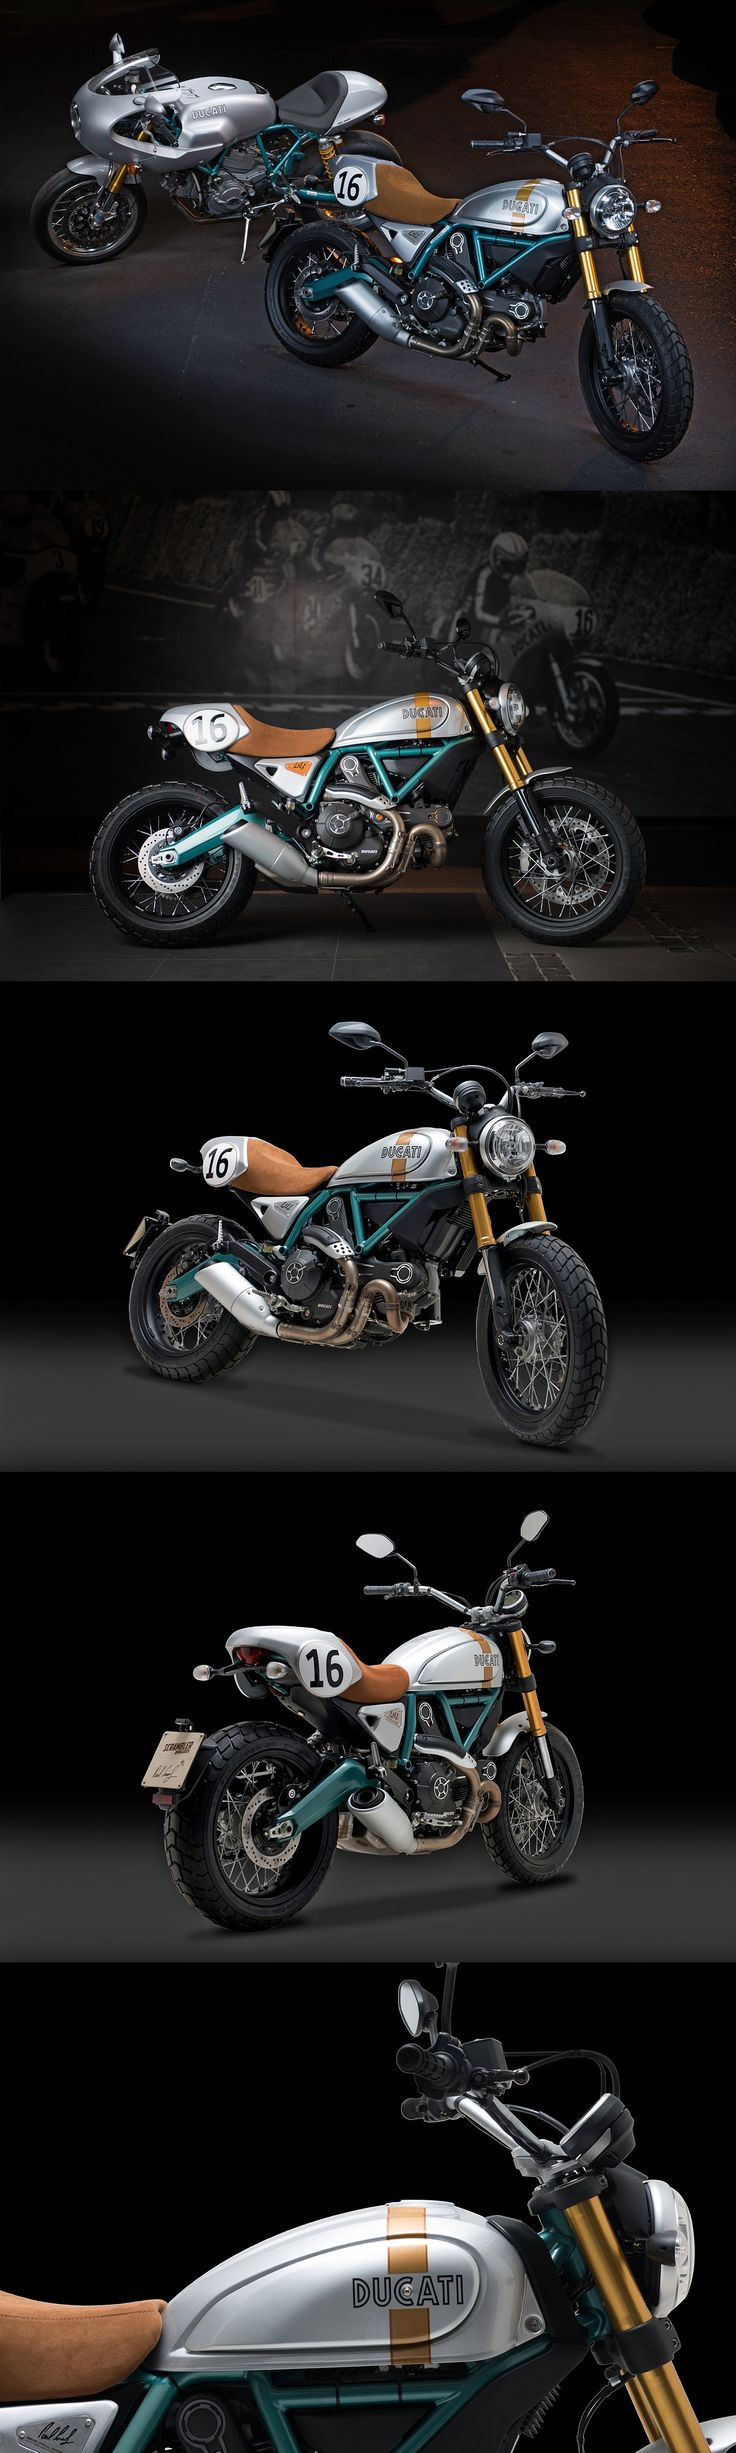 Ducati Scrambler - Paul Smart Edition